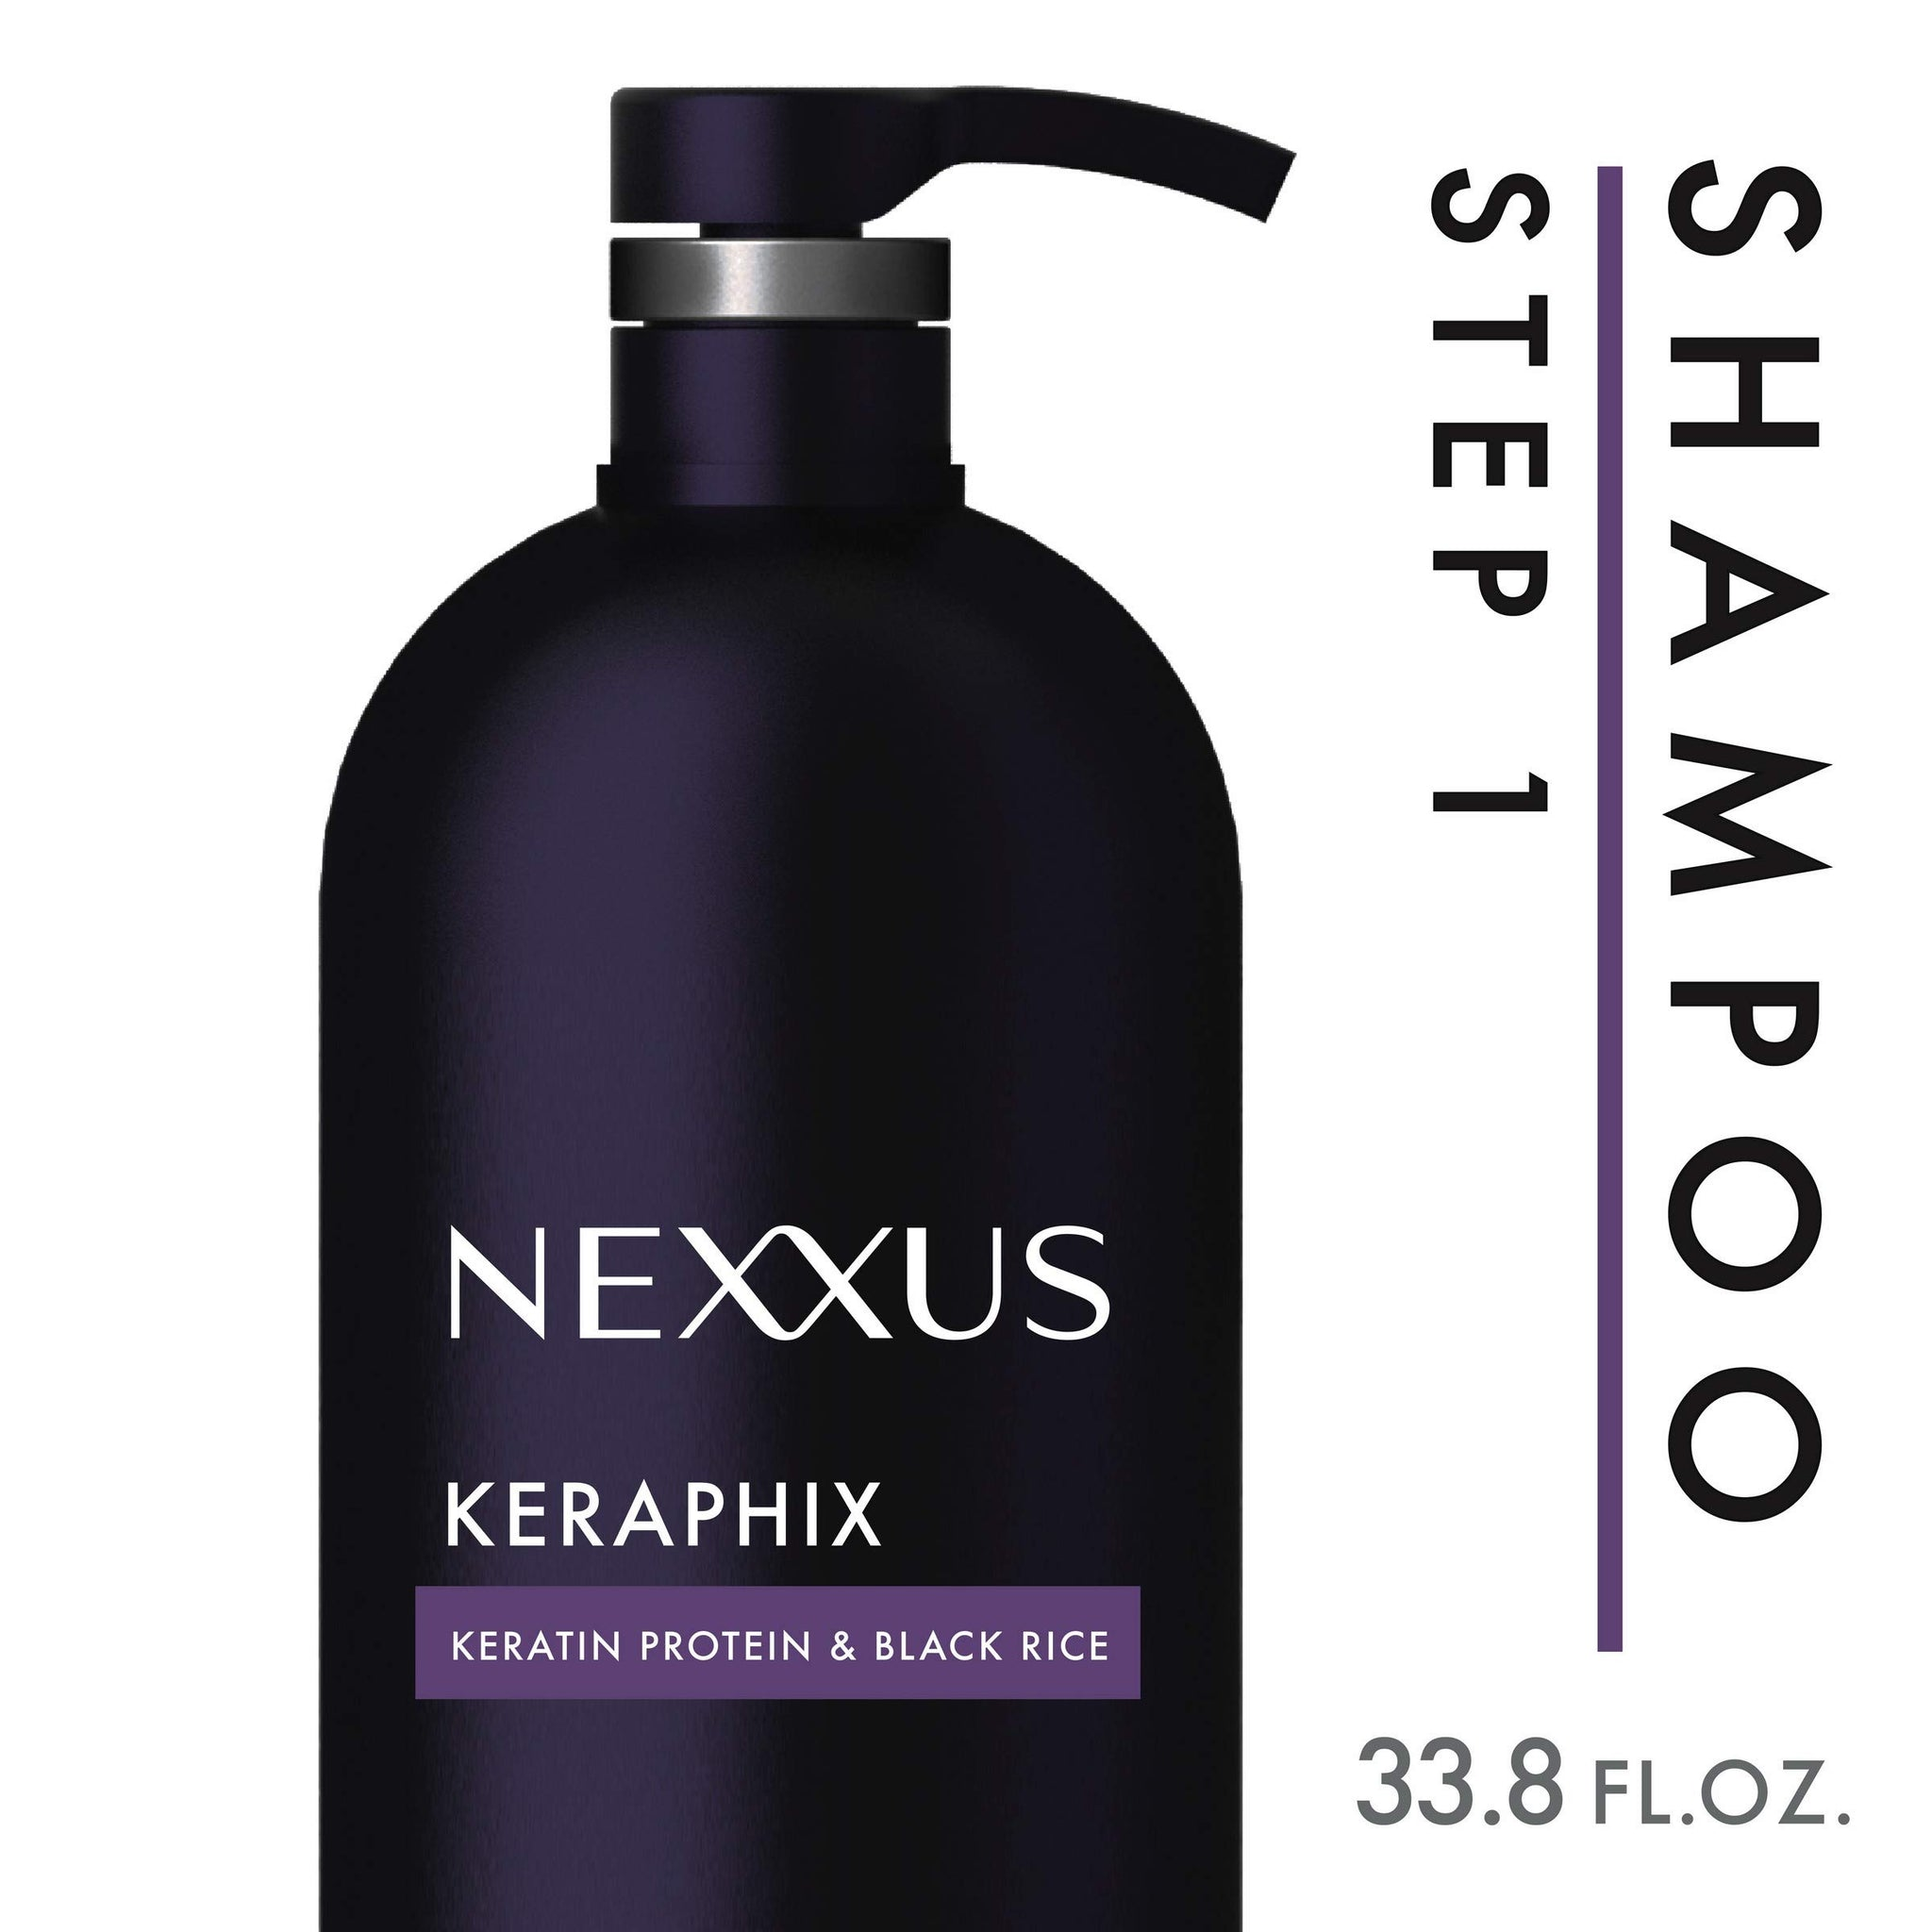 Nexxus Keraphix Shampoo For Damaged Hair 33 8 Oz Encompass Rl